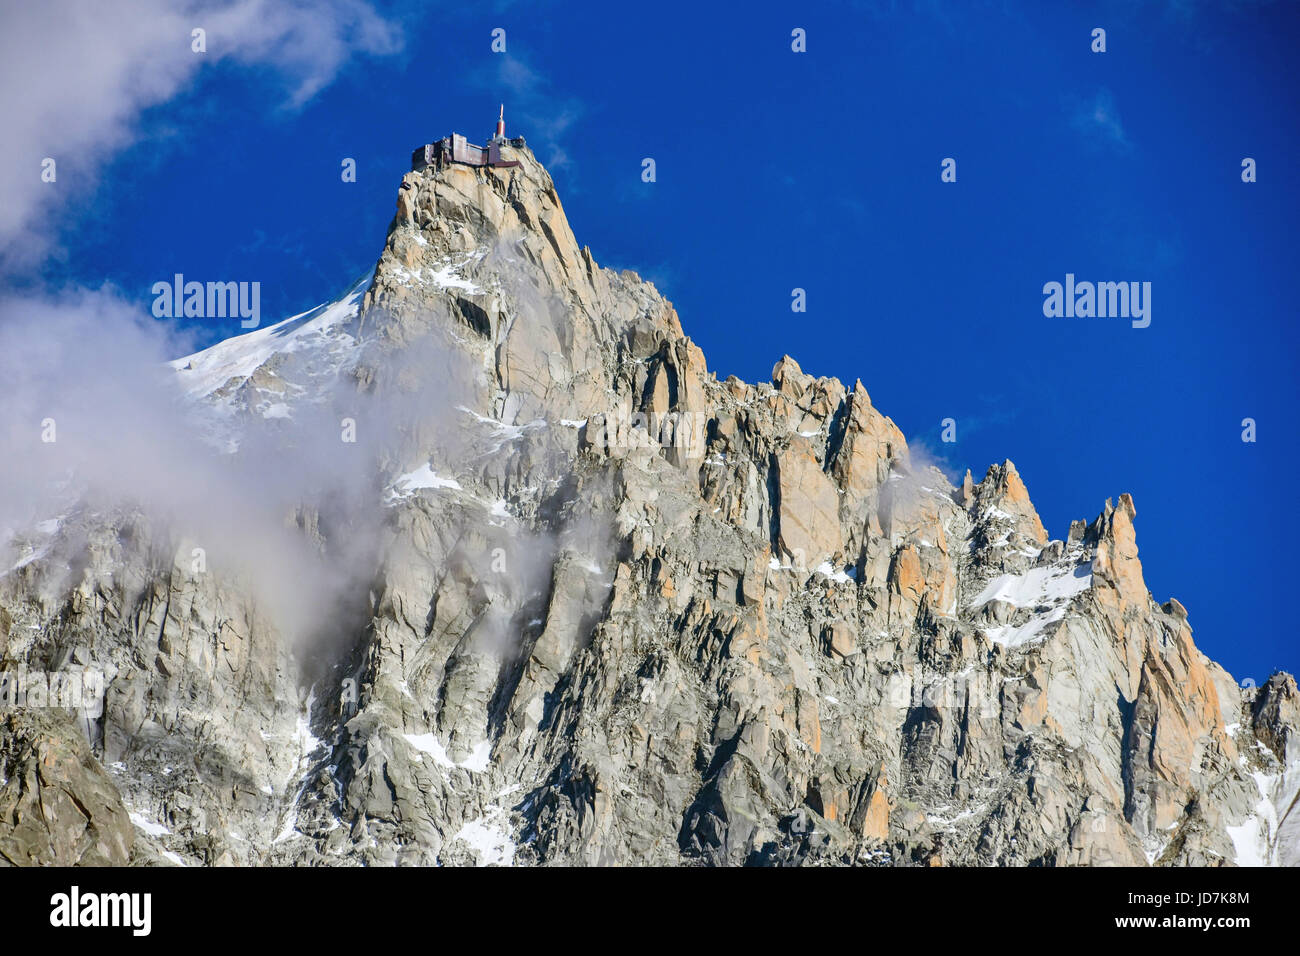 Aiguille du Midi cable-car station in the clouds, Chamonix, France Stock Photo